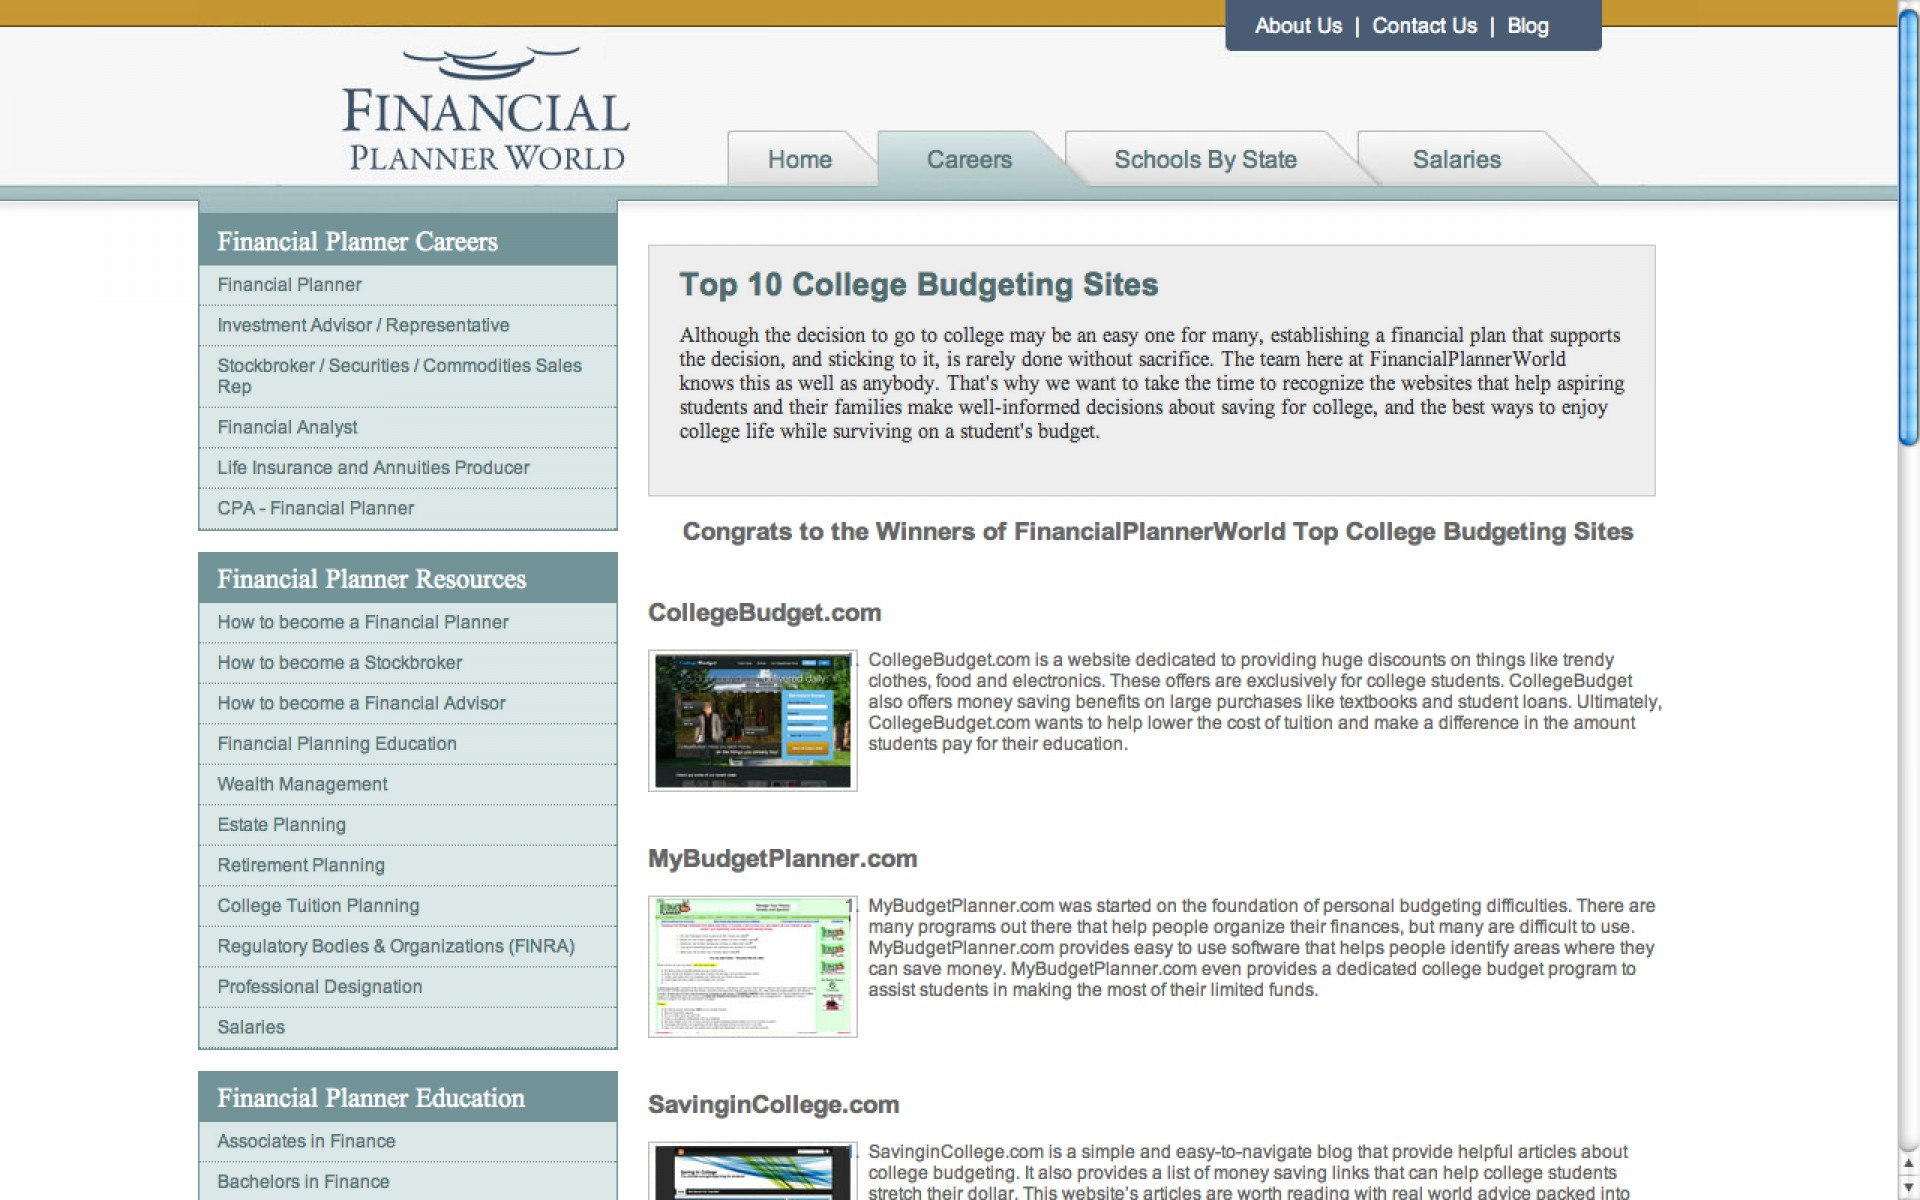 011 Screen Shot At Pm Finance Researchs Websites Astounding Research Papers 1920